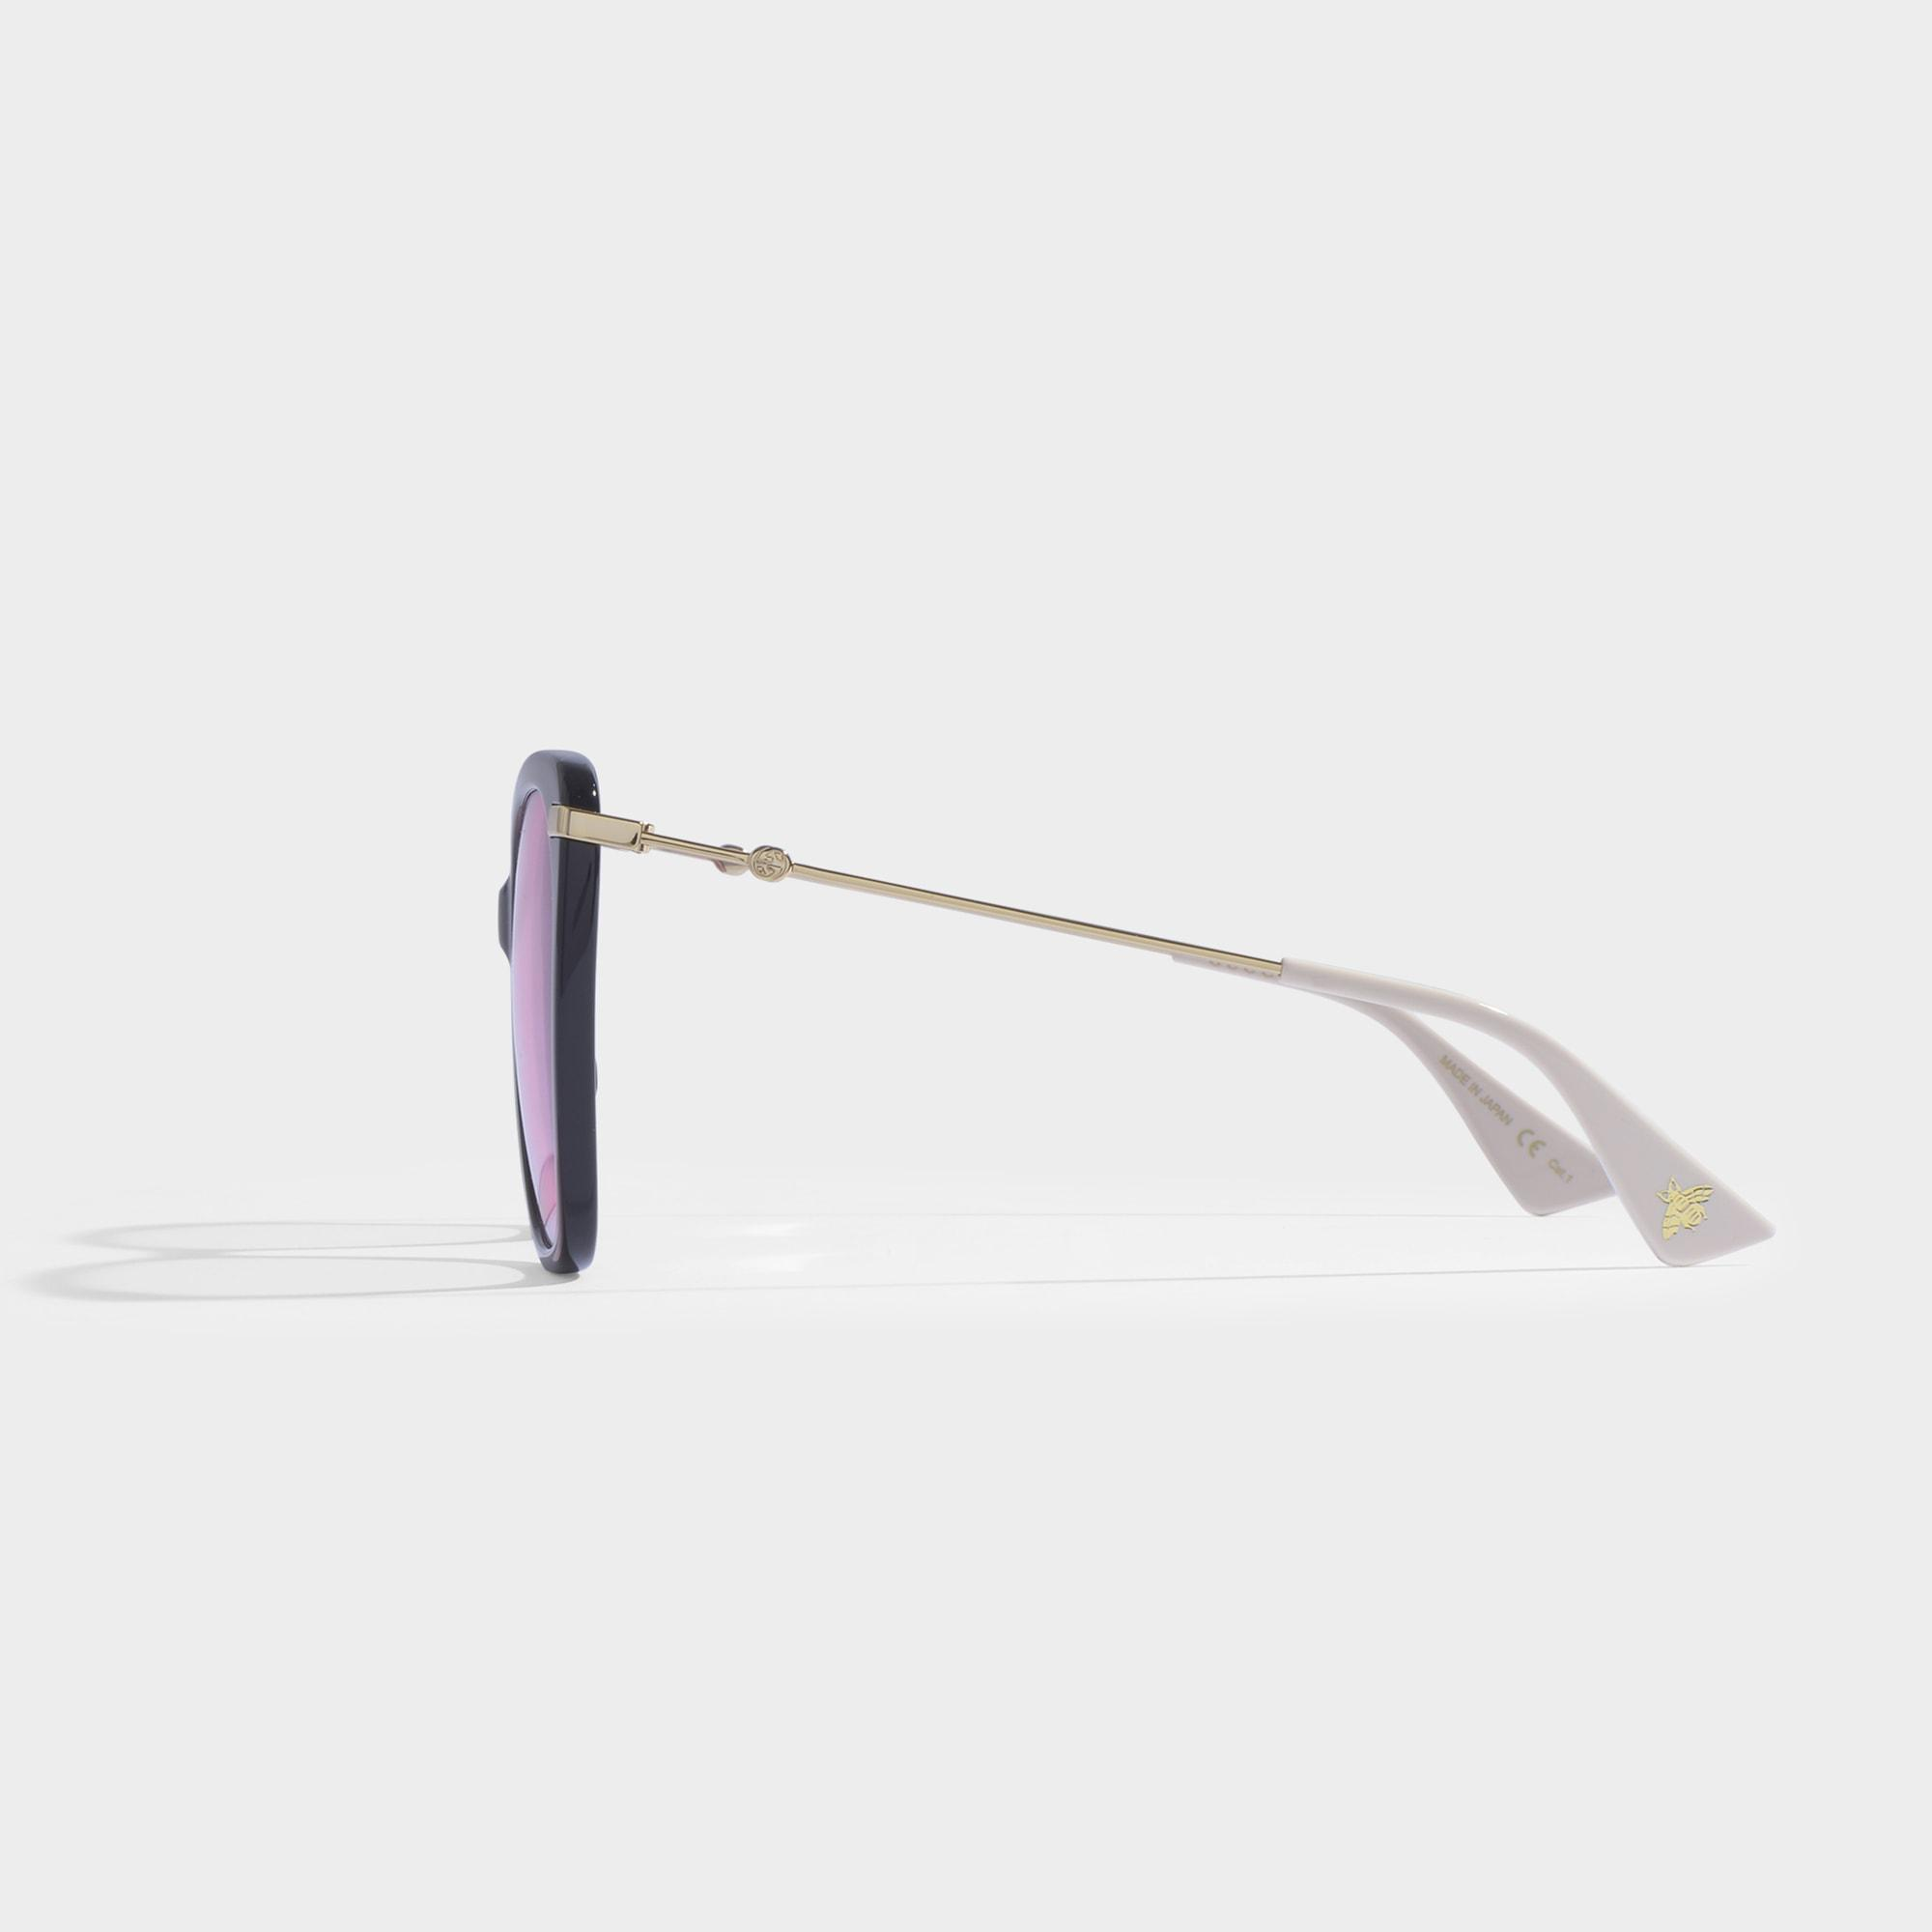 ccbfb3c8f Gucci - Cat-eye Sunglasses In Black Acetate With Pink Lenses - Lyst. View  fullscreen